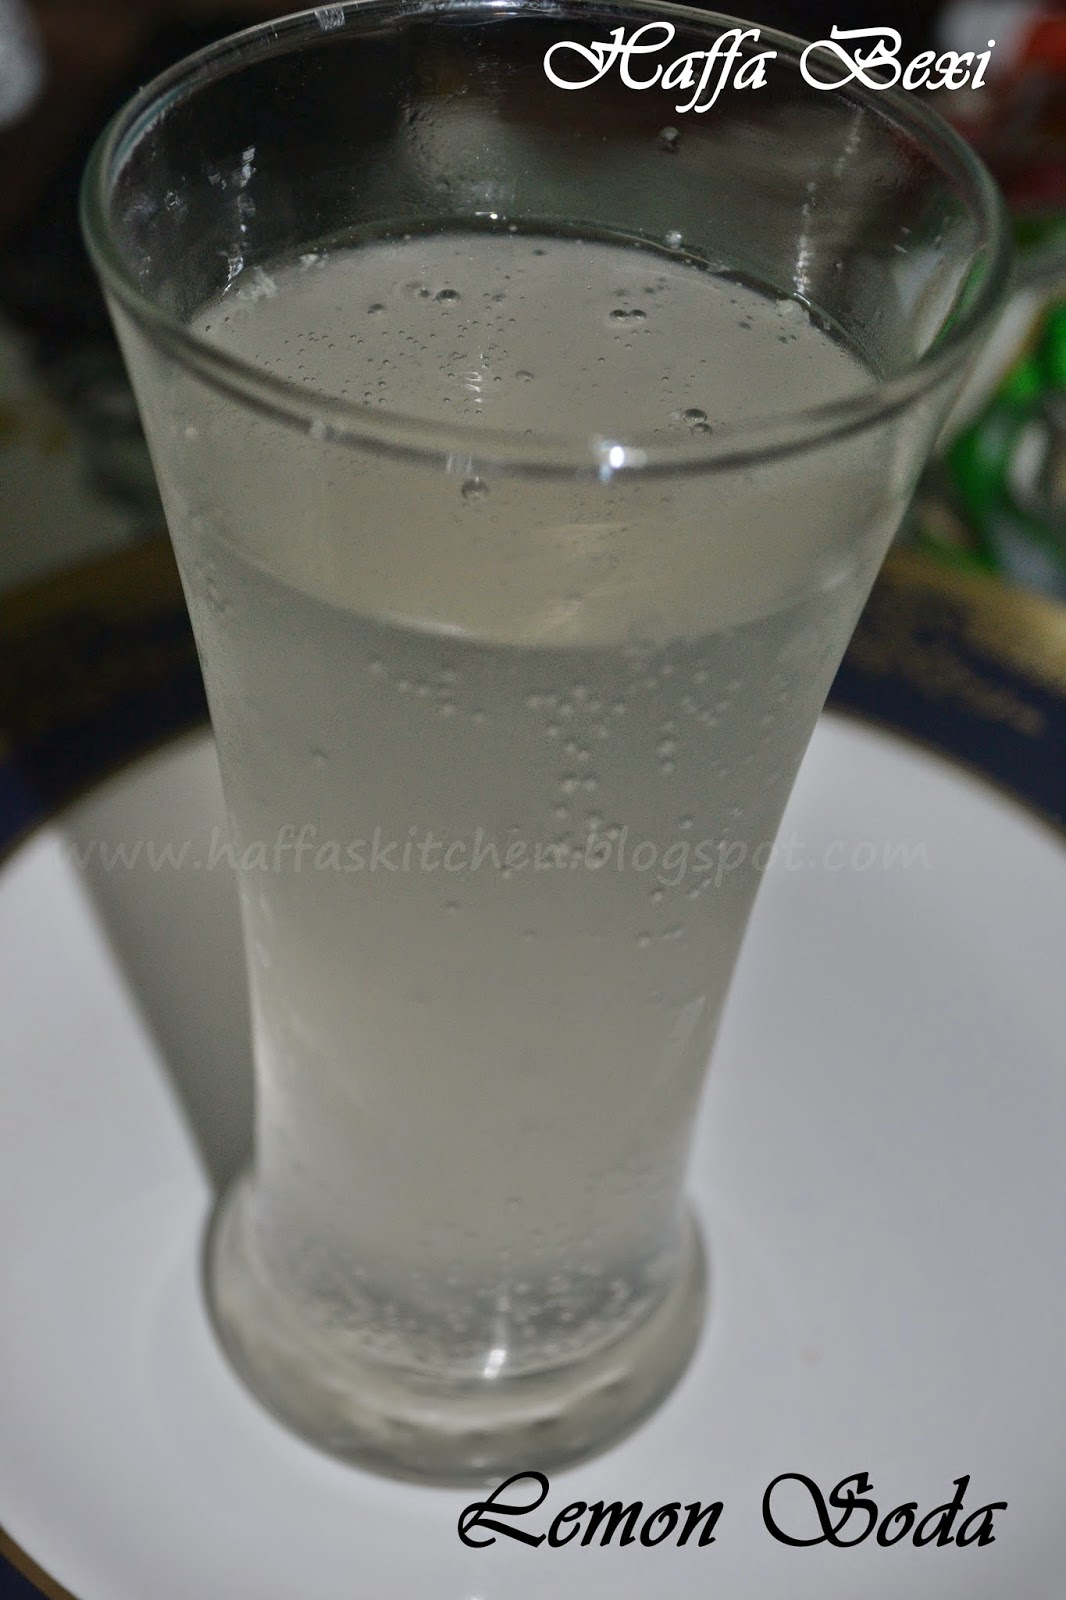 Drinks & Shakes, Lemon Soda, 7UP,Thaa soda recipe, Thaa Soda, Sprite, Summer drink, pakistani summer drink, how to make lemon soda,lemon soda recipe